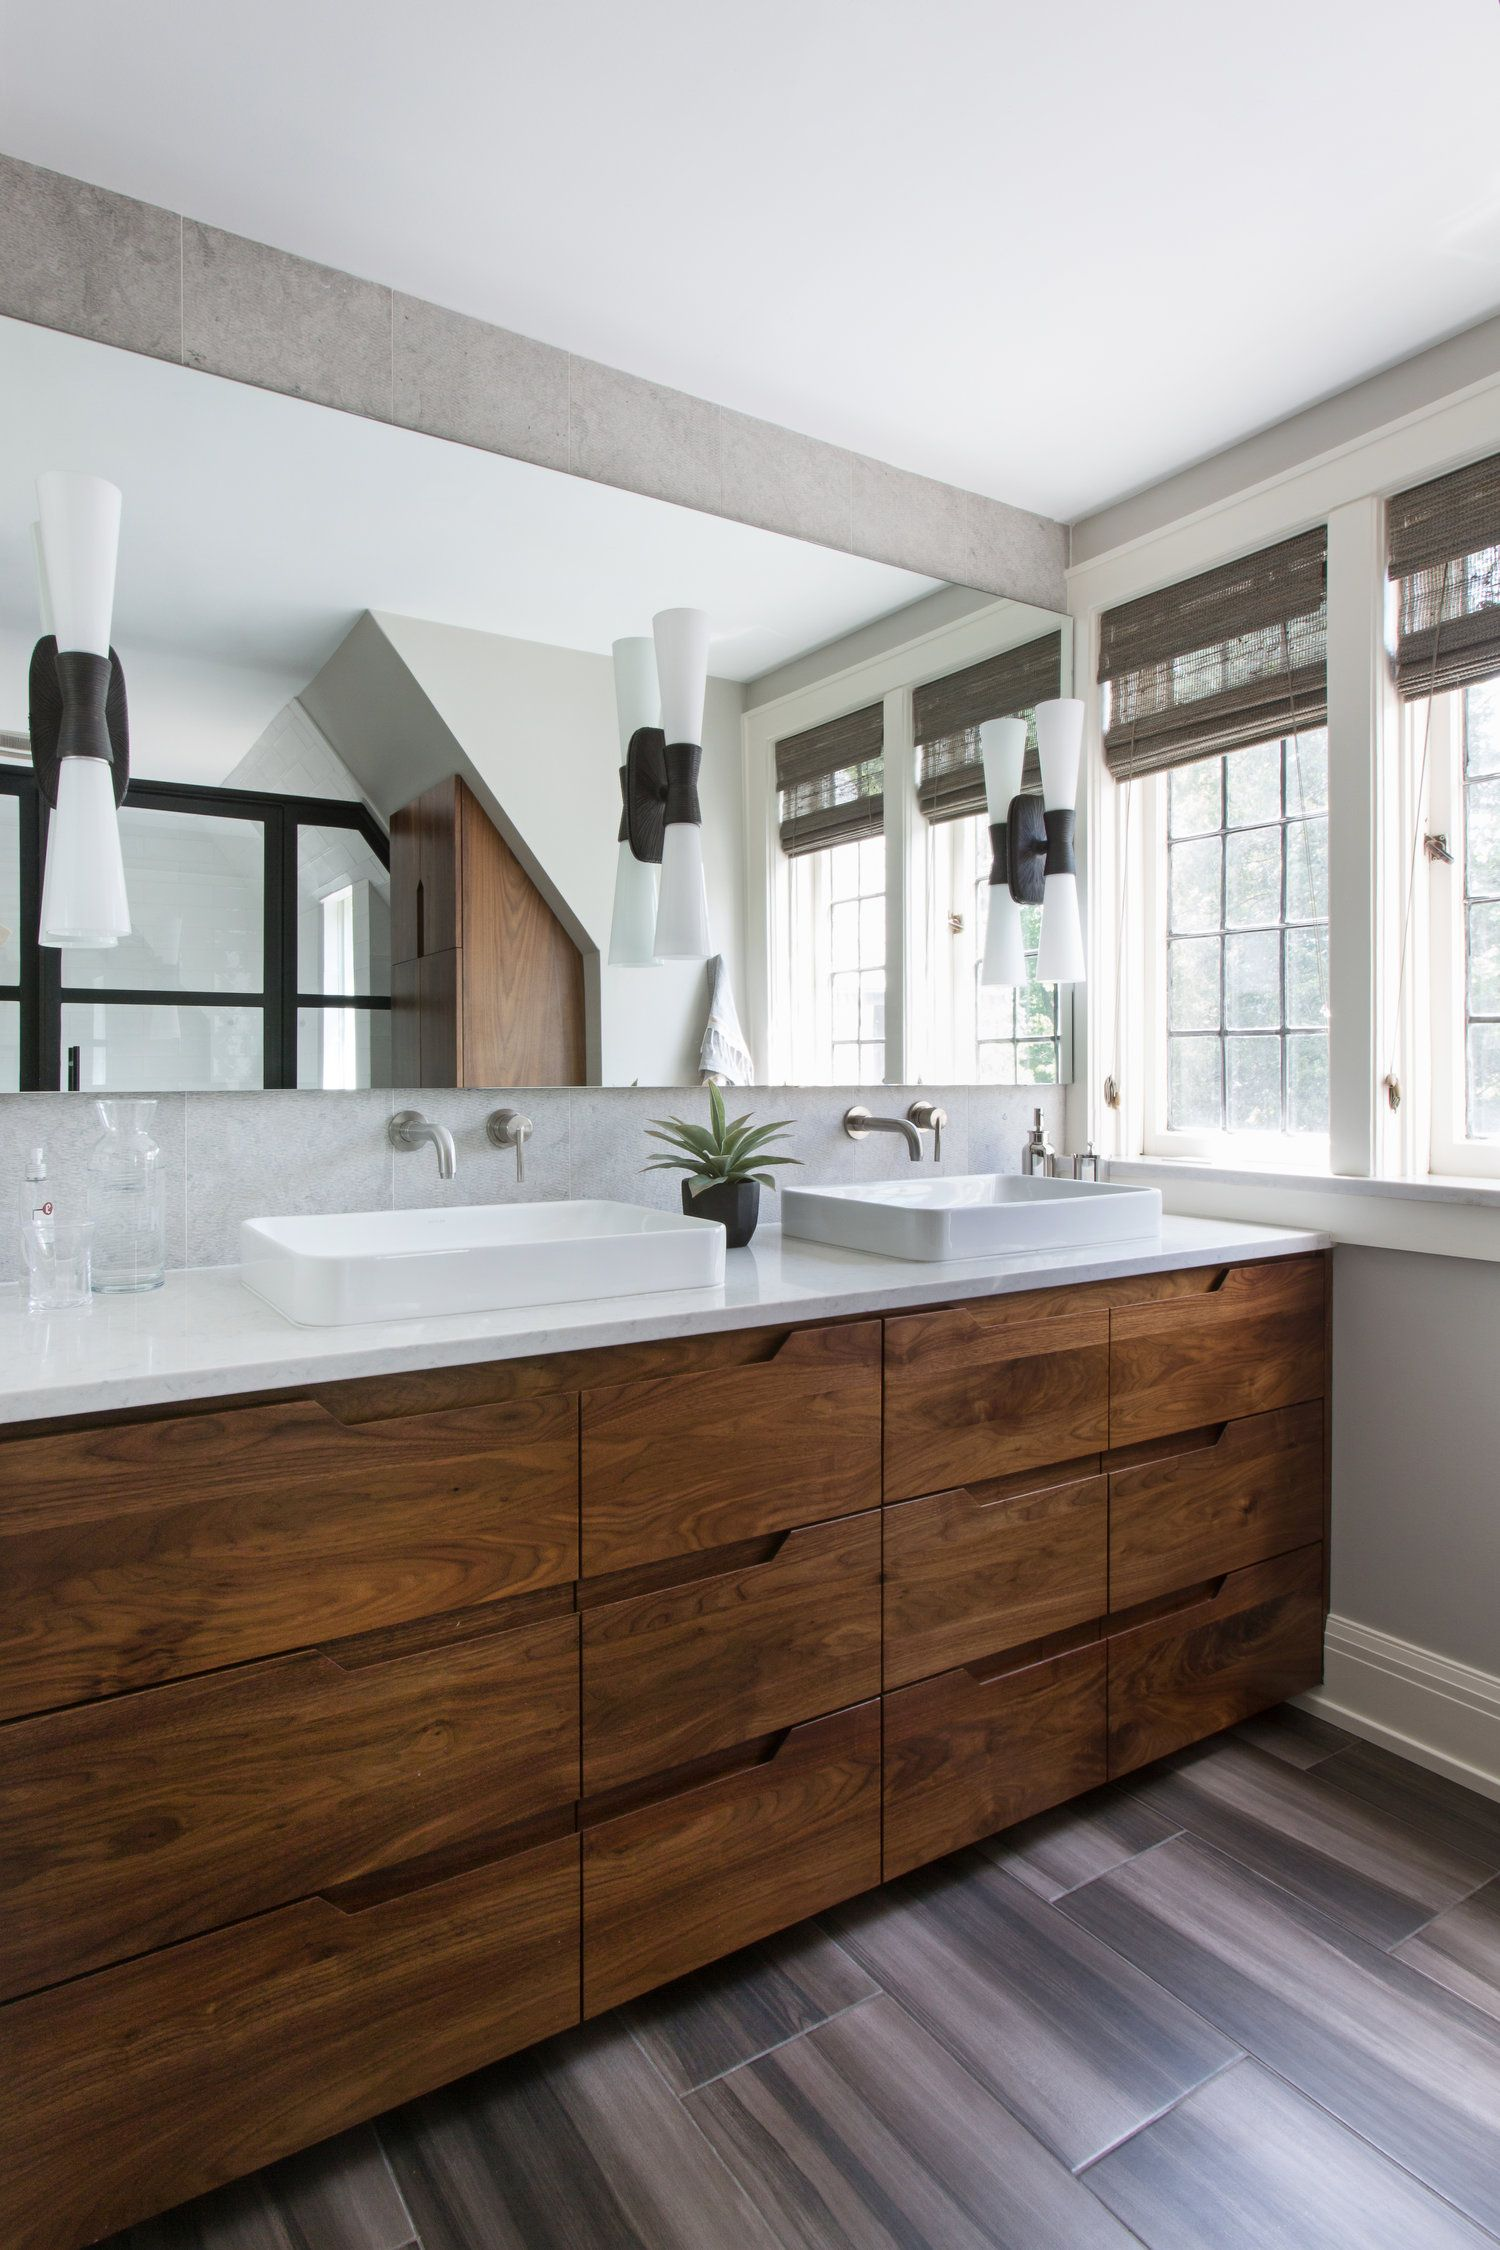 Master bedroom bathroom layout  Pin by Page Design Kansas City on Bathroom remodel  Pinterest